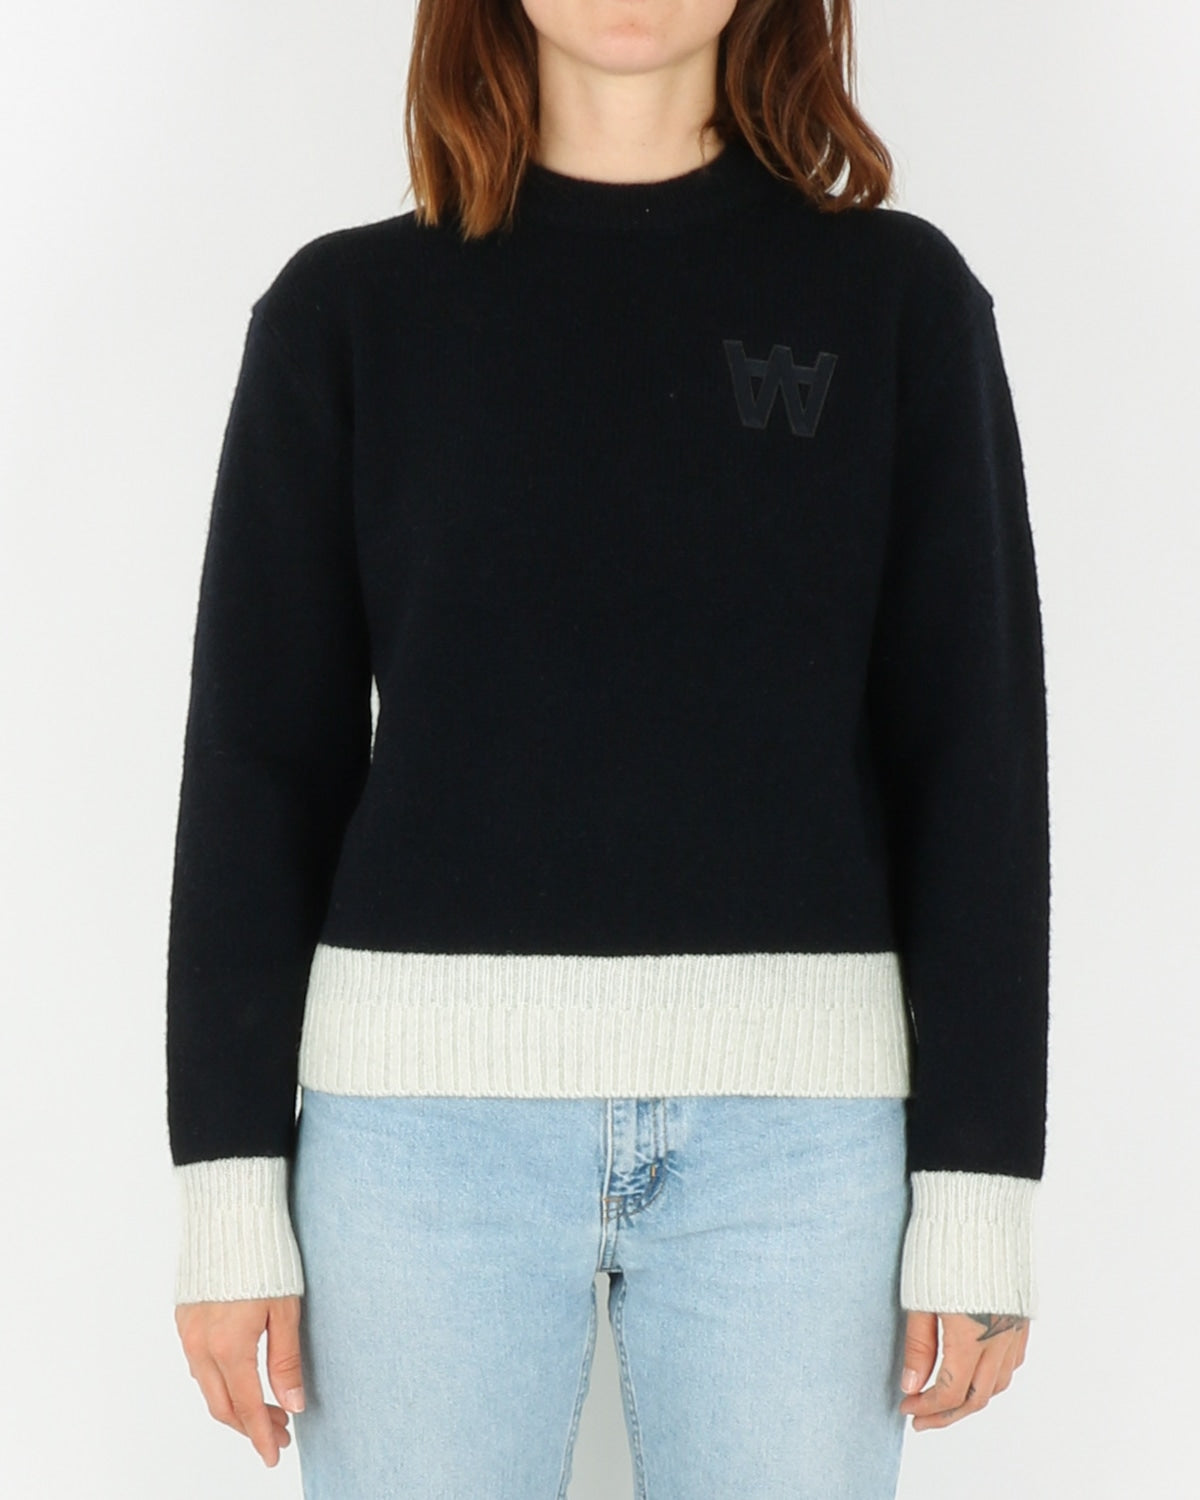 wood wood_anneli sweater_navy_view_1_3